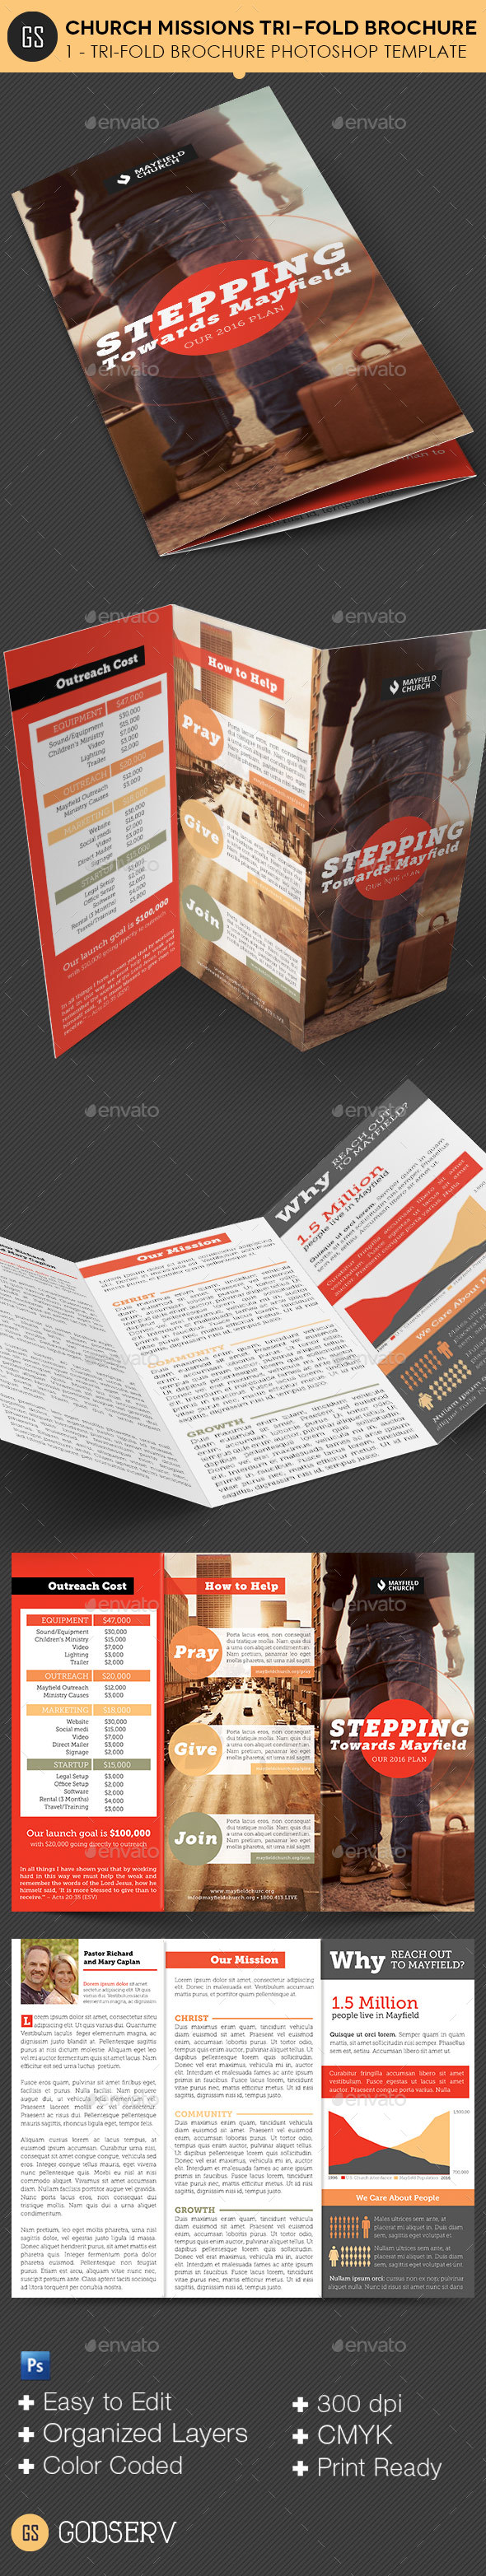 Church Missions TriFold Brochure Template By Godserv GraphicRiver - Informational brochure template